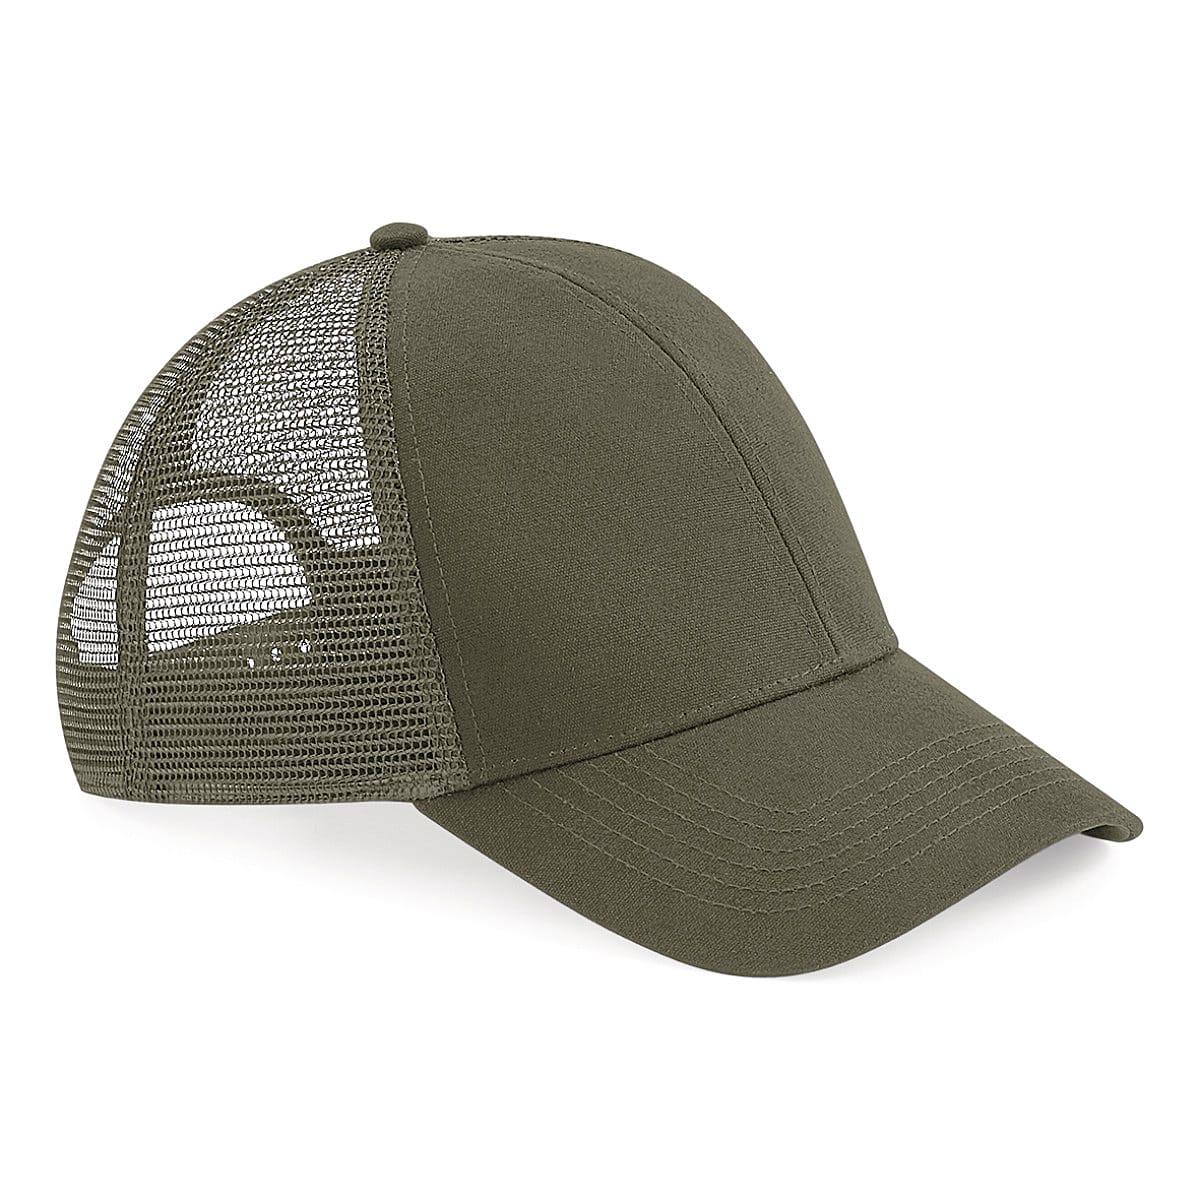 Beechfield Organic Cotton Trucker Cap in Olive (Product Code: B60)